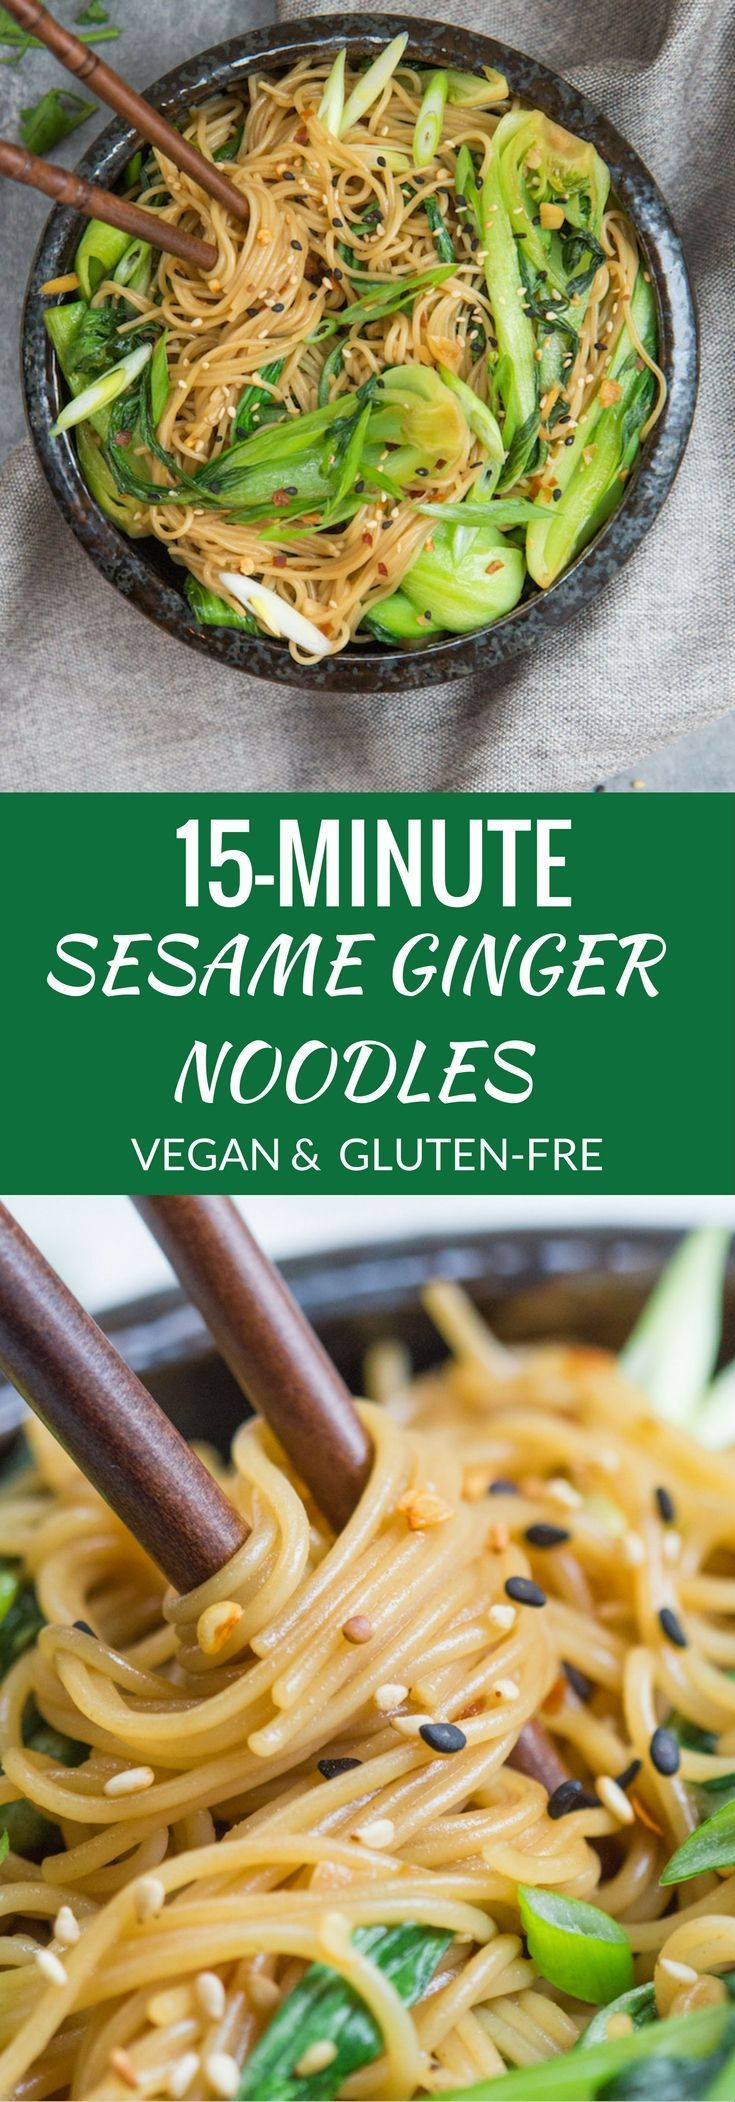 Looking for a quick dinner? Why YES I AM! 'These sesame ginger noodles come together in less than 15 minutes. They're vegan, gluten-free, and loaded with bok-choy!'